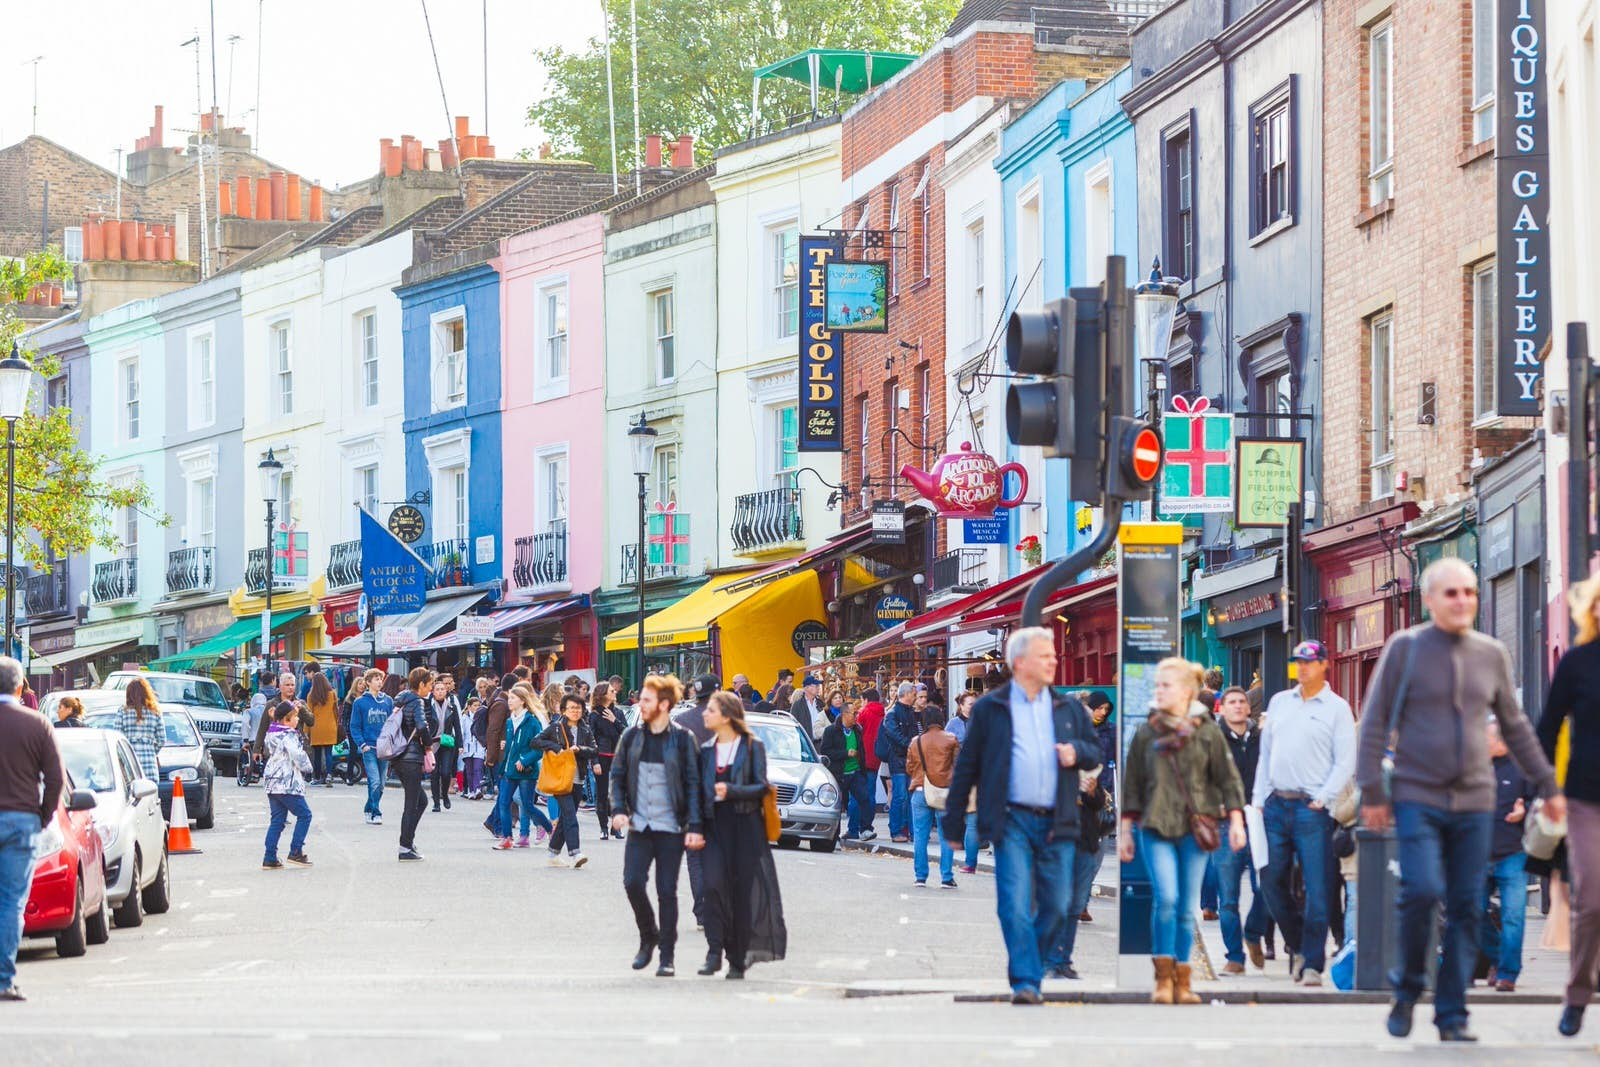 Notting Hill Ladbroke Grove the insider's guide to london's notting hill - lonely planet